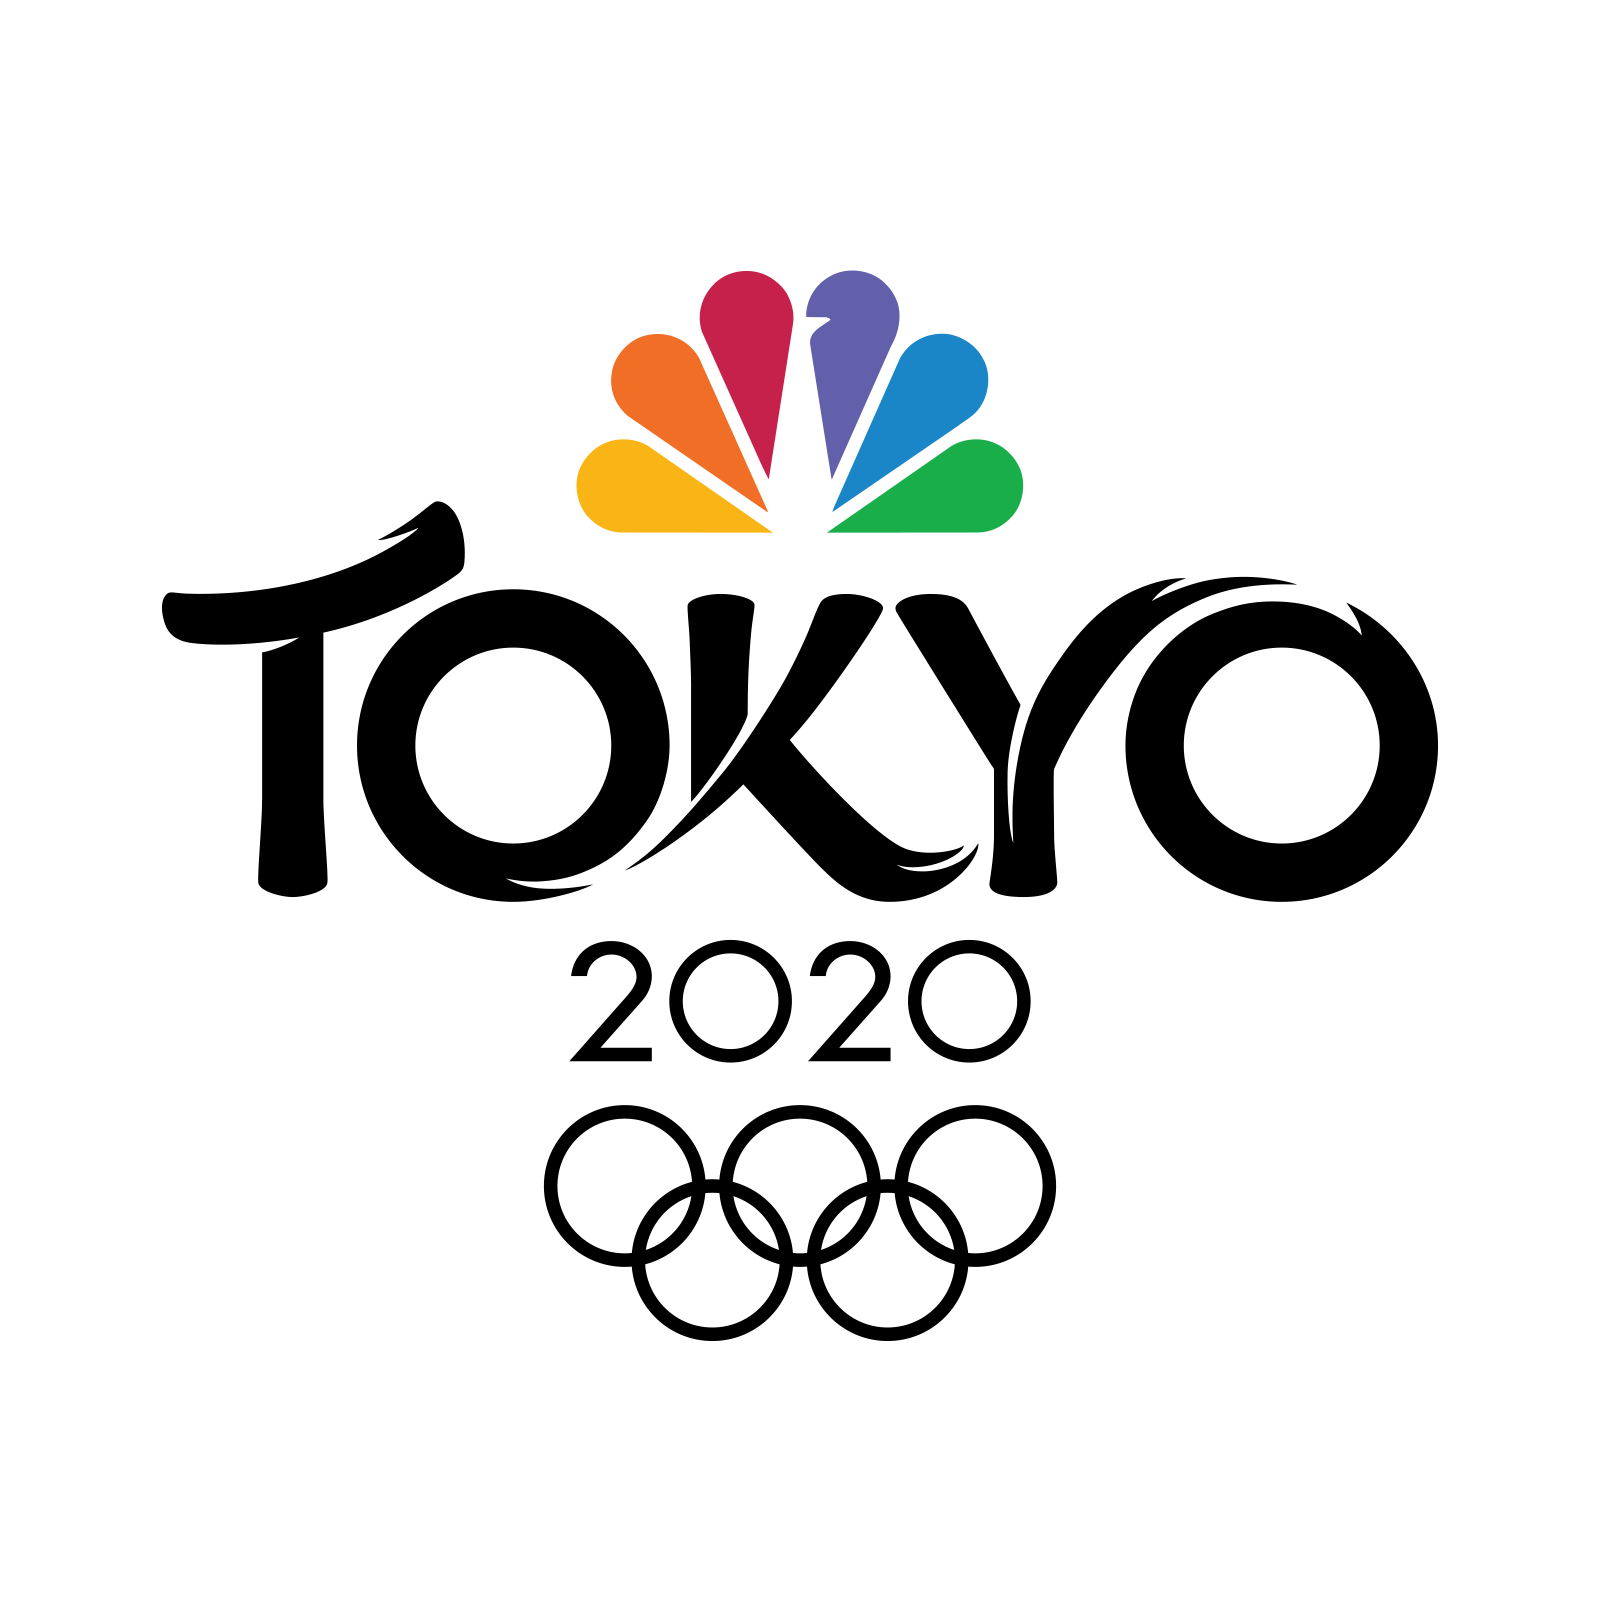 NBCU says it has received more than $1 billion in national advertising commitments for the Tokyo 2020 ©NBCU